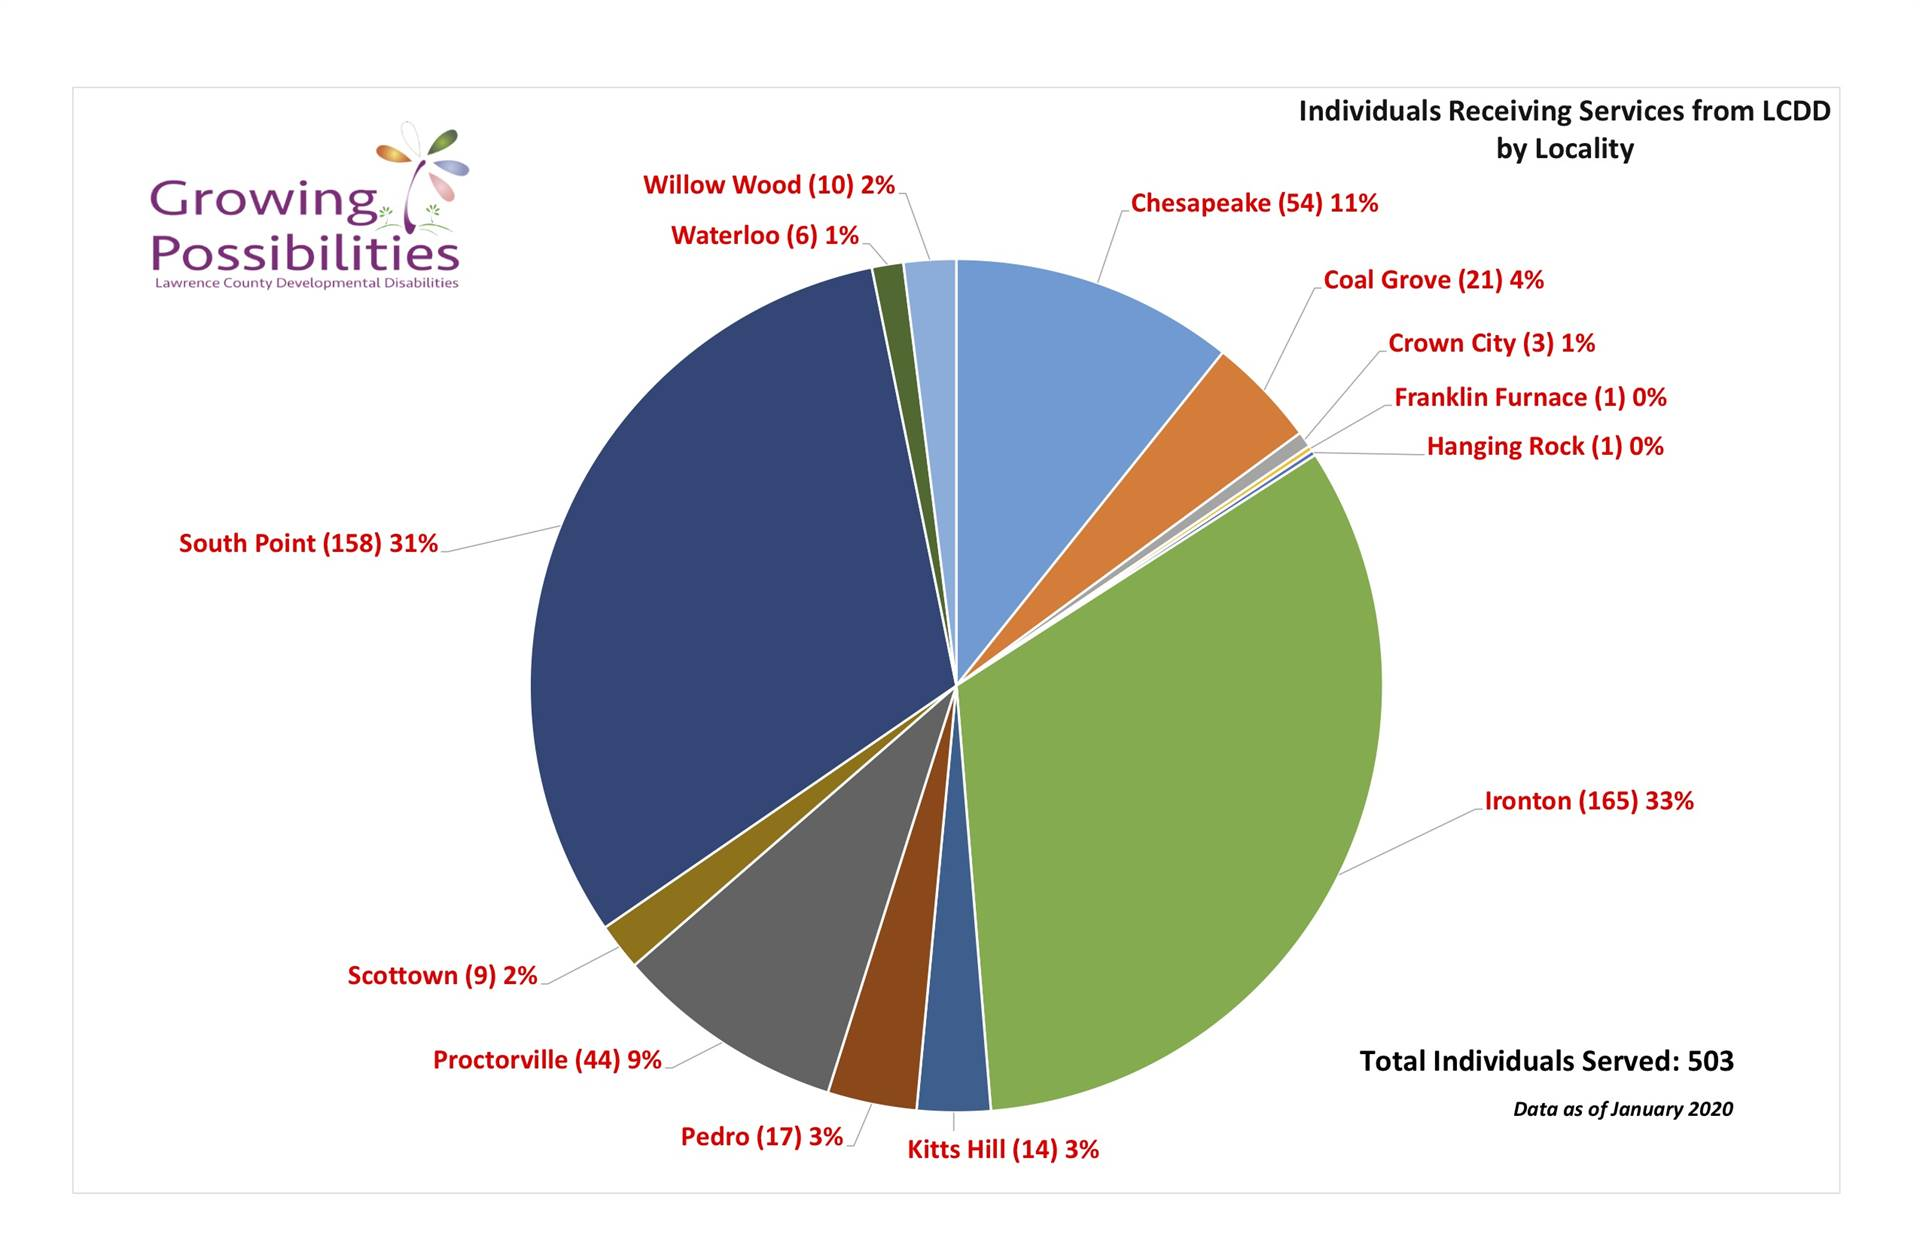 All Services Pie Chart